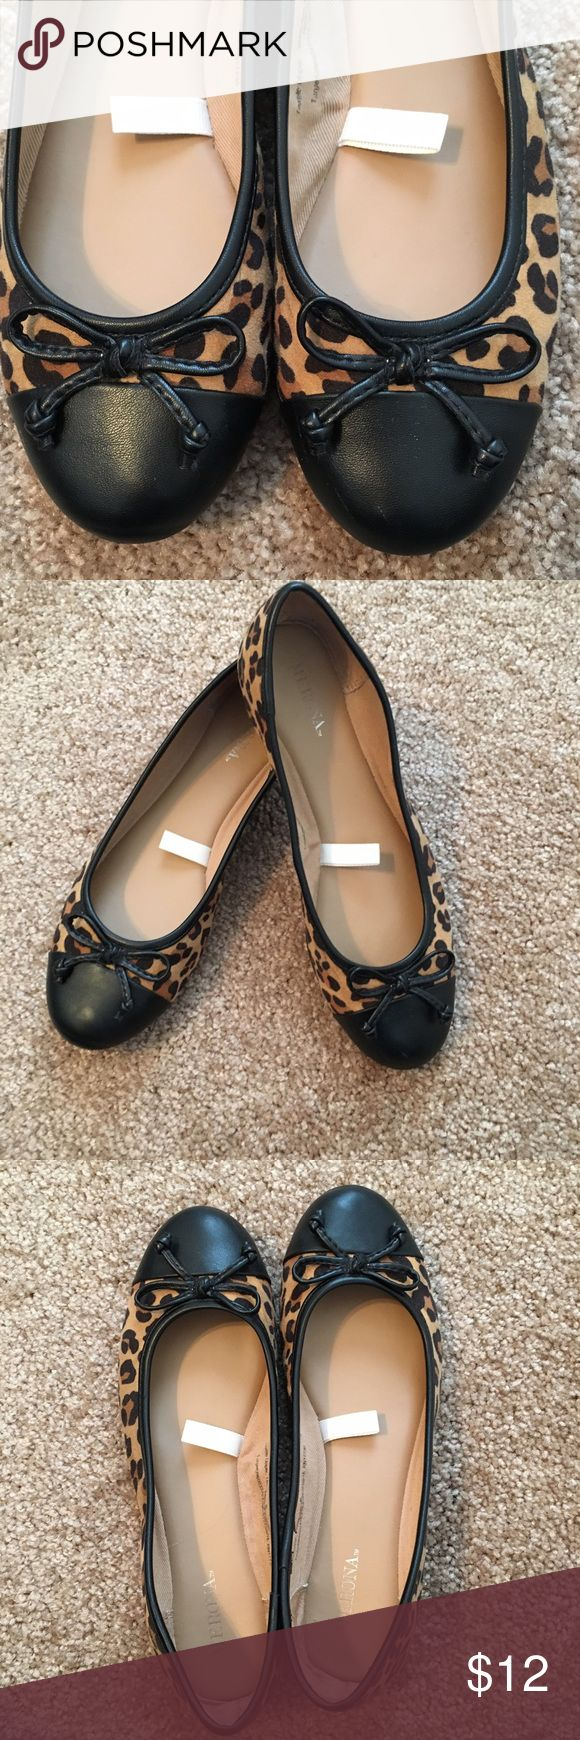 Merona leopard cap toe flats These shoes have been pre-loved but they are still in great condition, and they will add a little fun to any outfit. Feel free to make reasonable offers! Merona Shoes Flats & Loafers